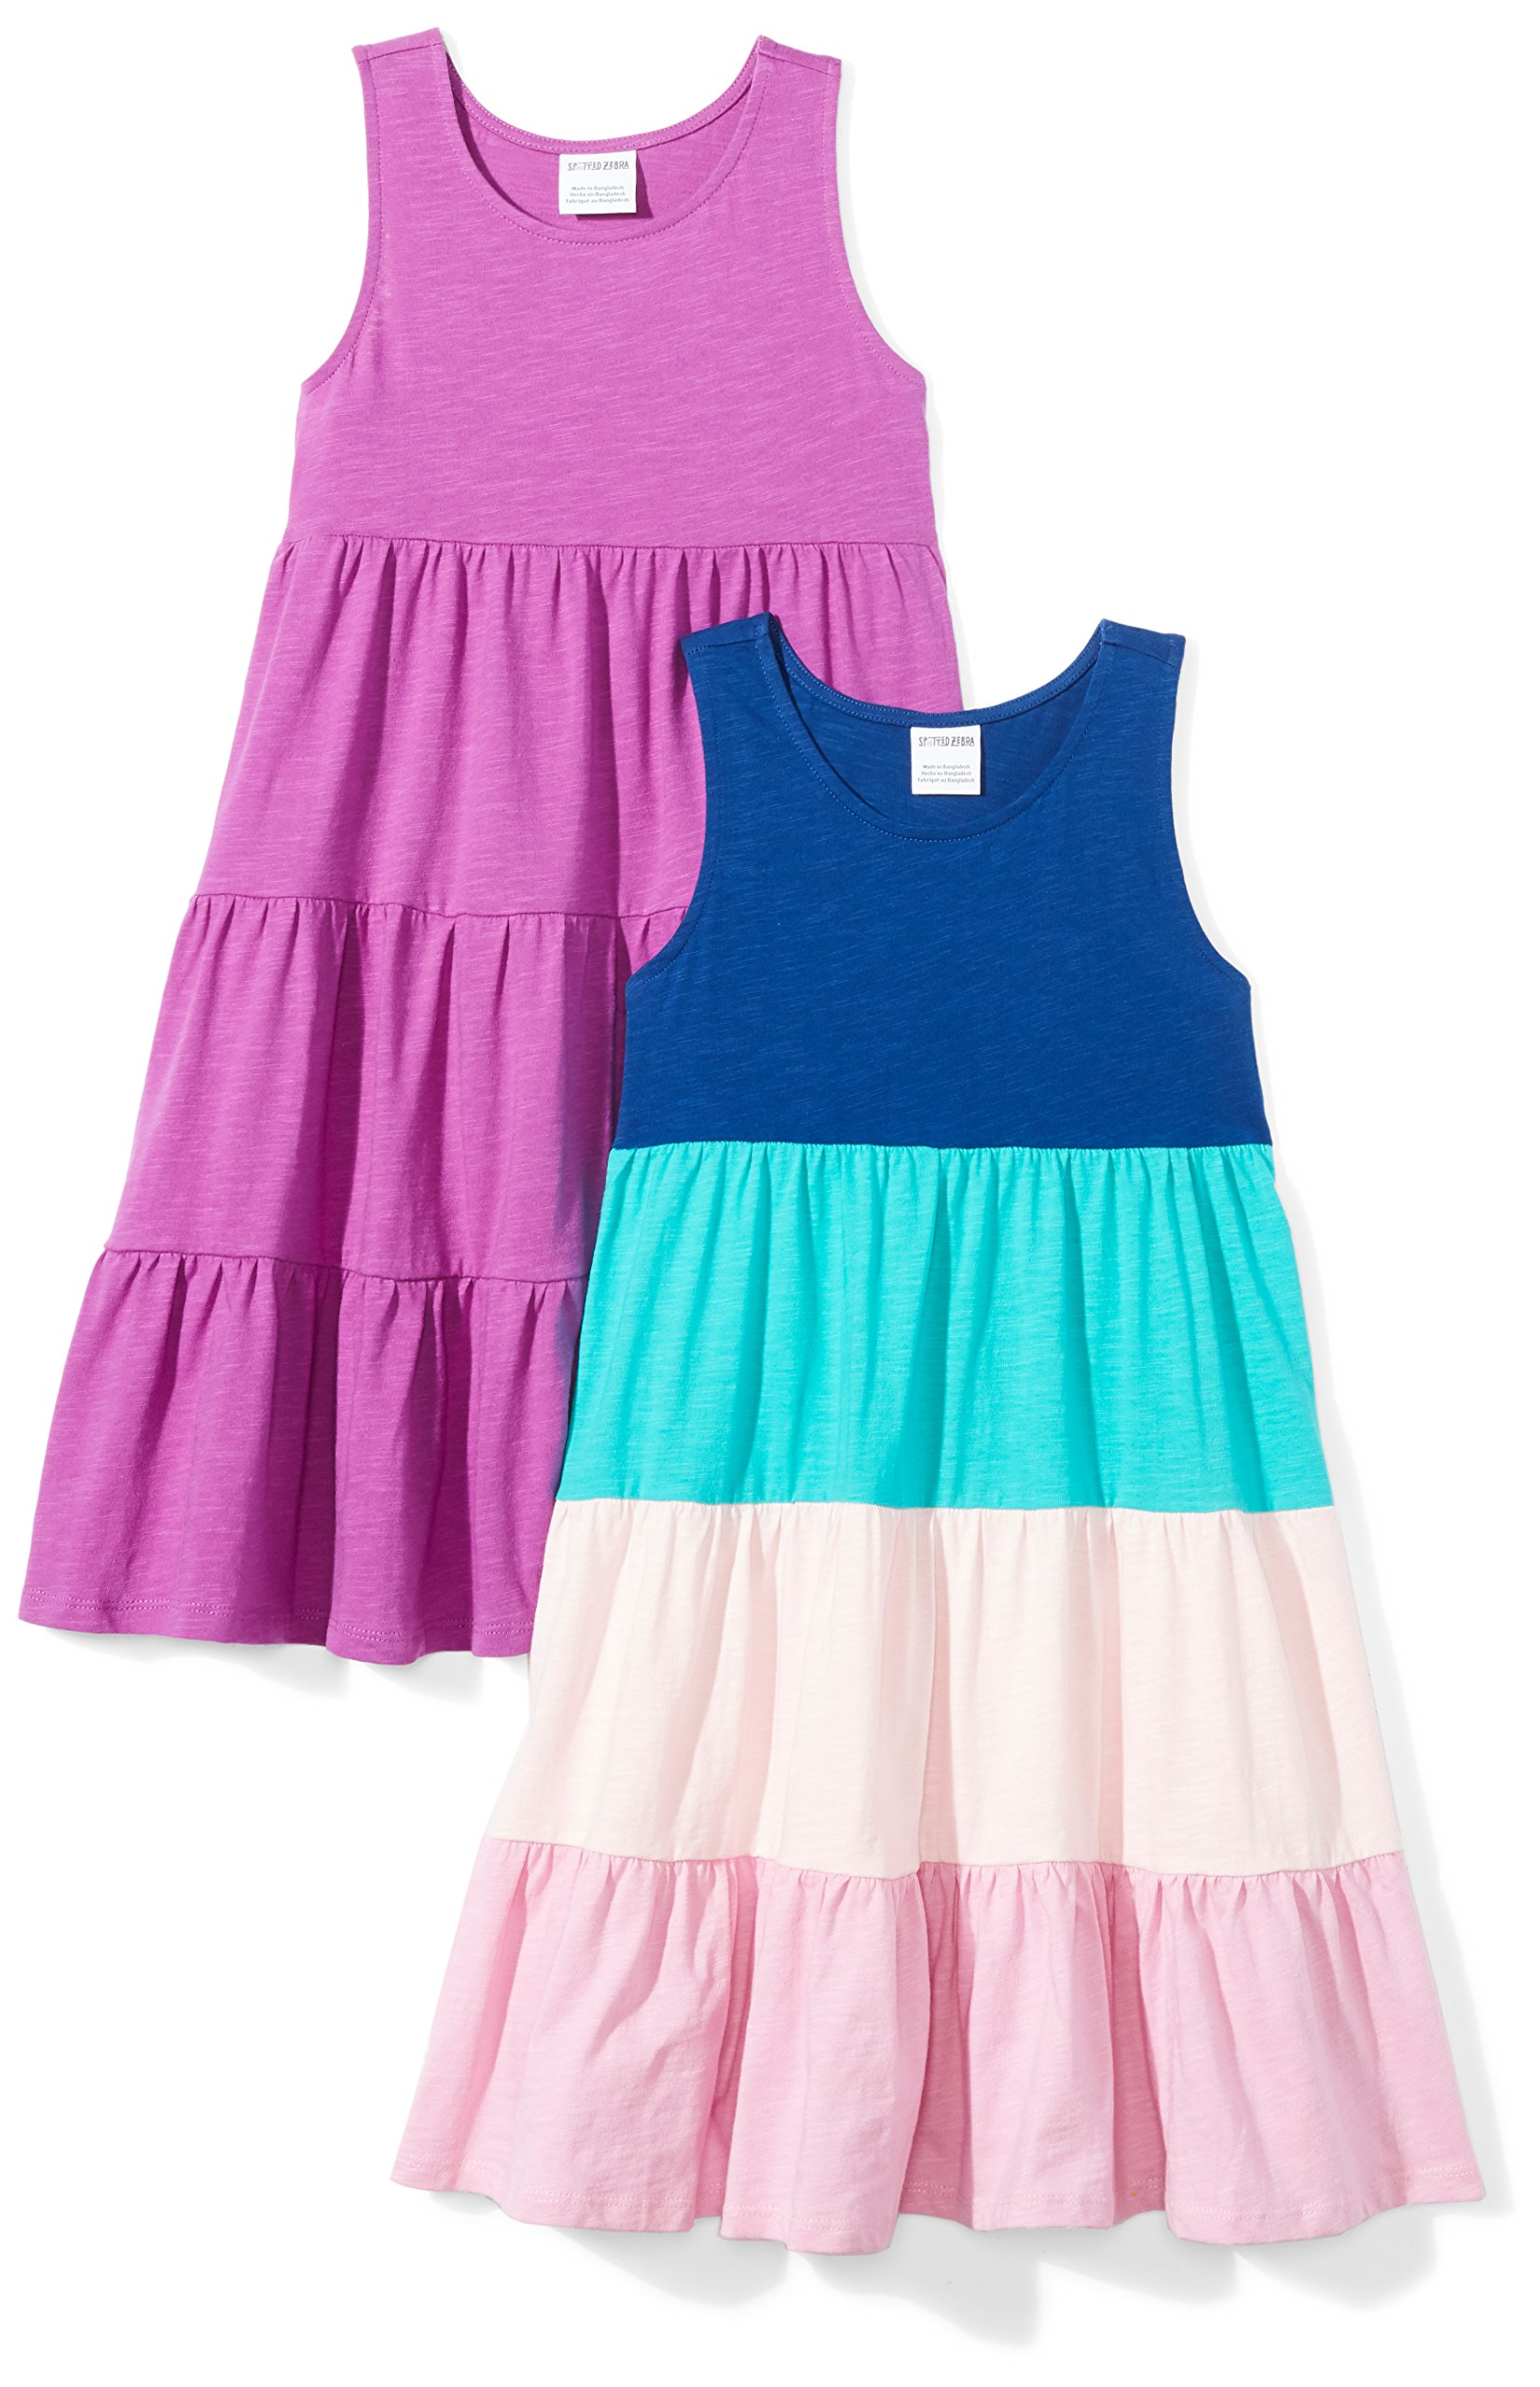 Amazon Brand - Spotted Zebra Girls' Little Kid 2-Pack Knit Sleeveless Tiered Dresses, Purple/Blue, Small (6-7)